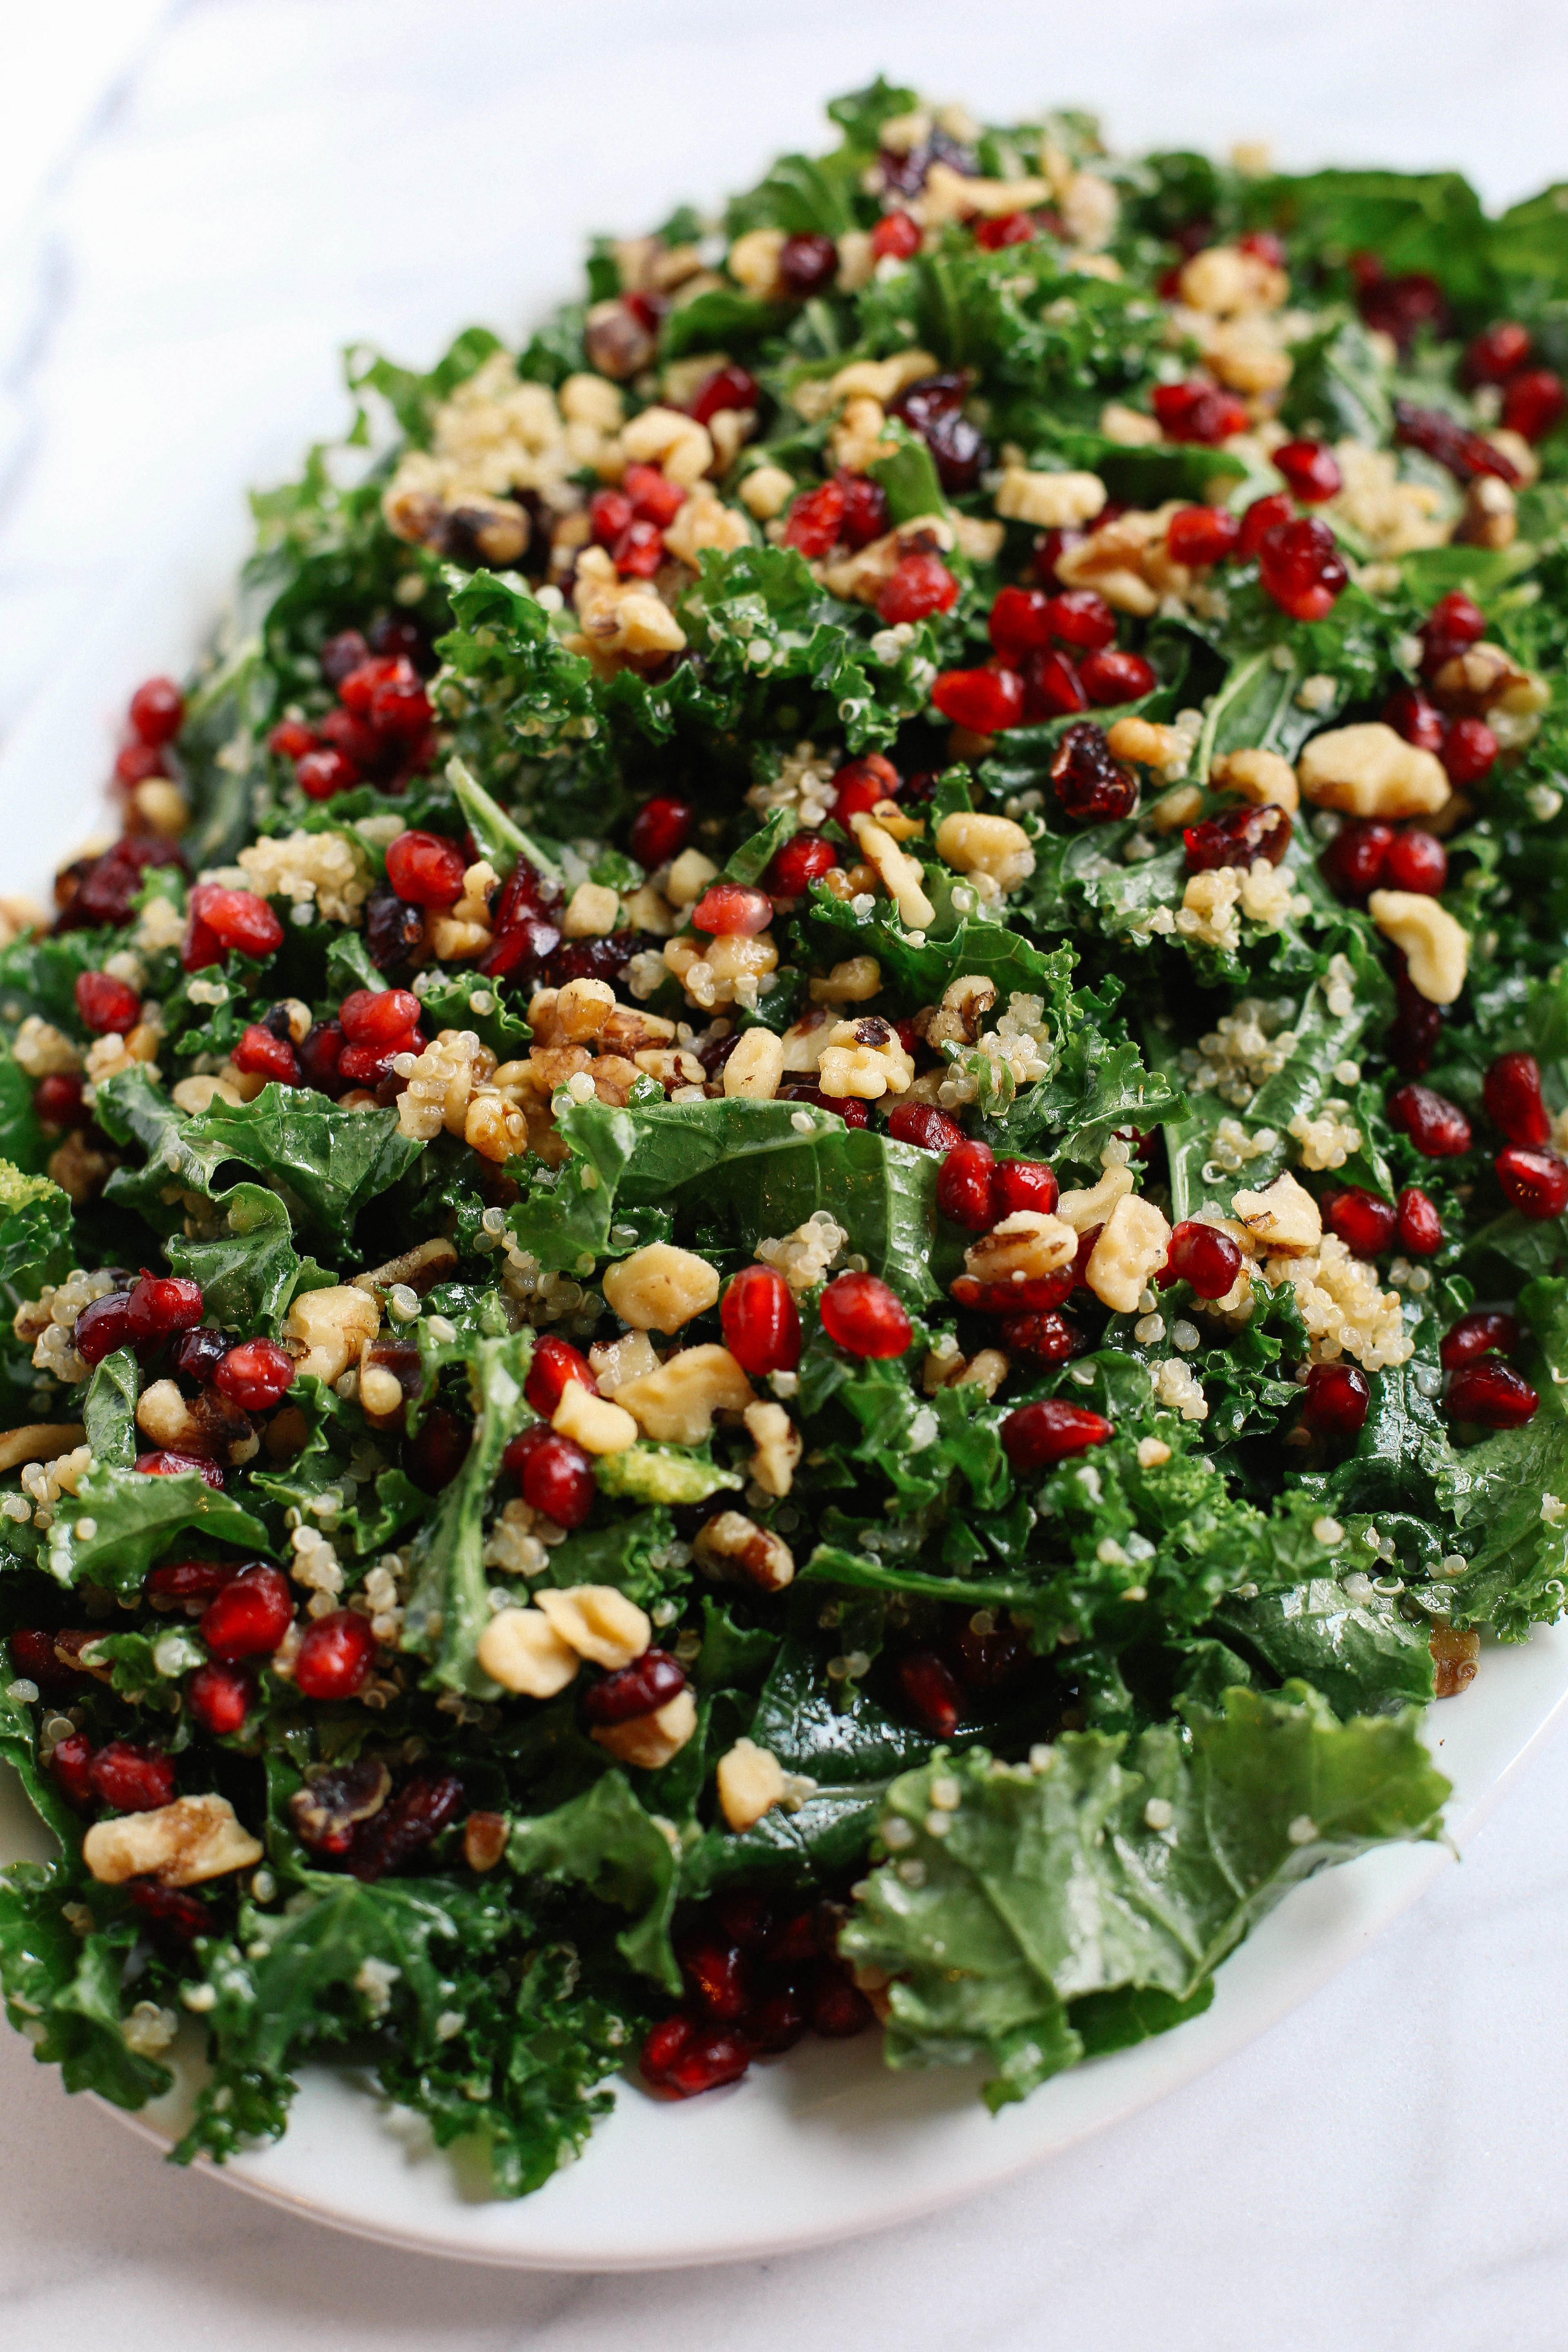 Healthy Kale Salad Recipes  Winter Kale and Quinoa Salad Eat Yourself Skinny